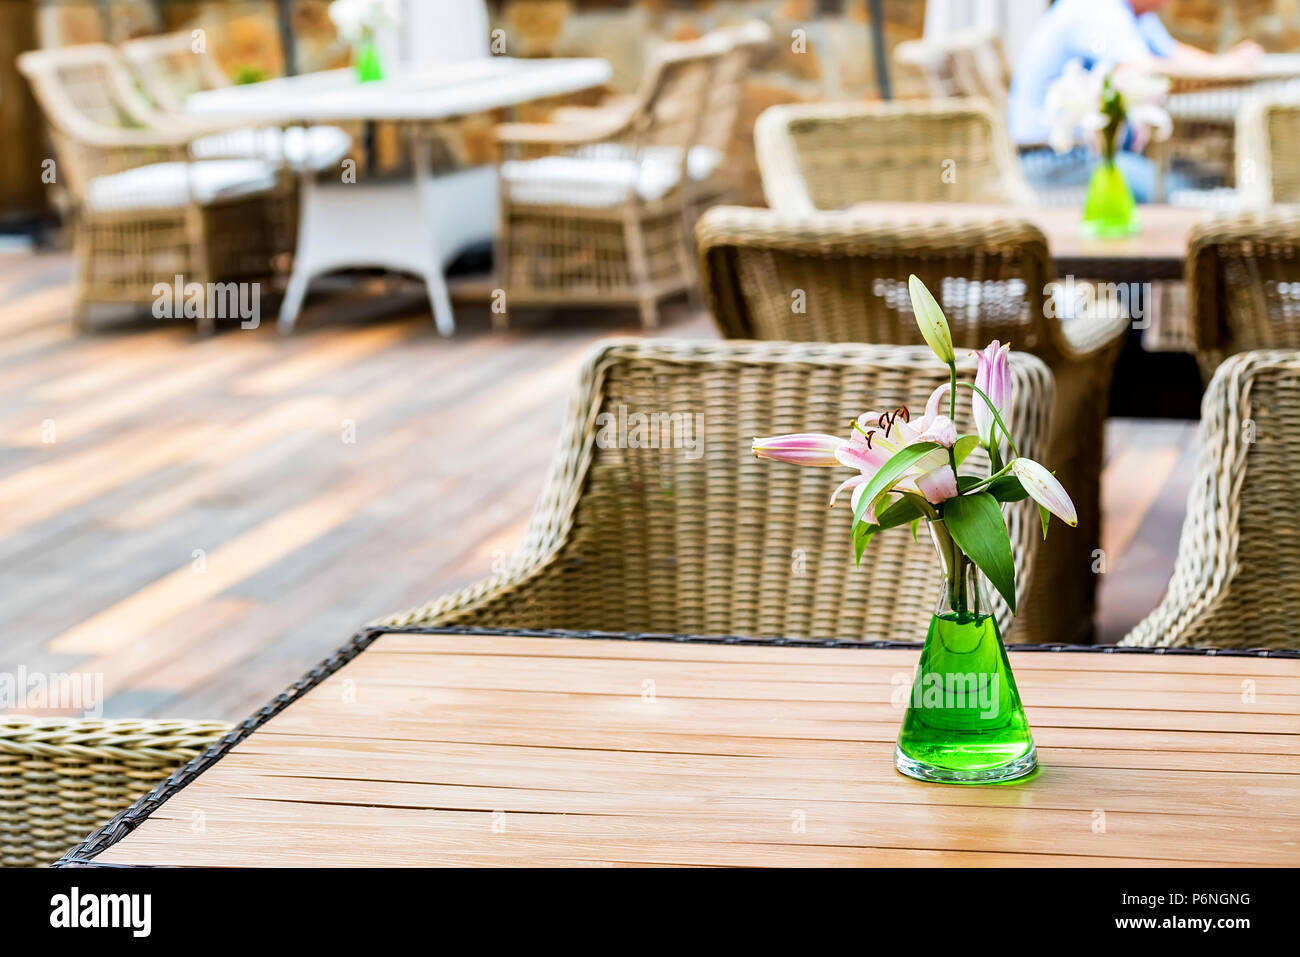 Outdoor restaurant interior with wicker chairs Stock Photo